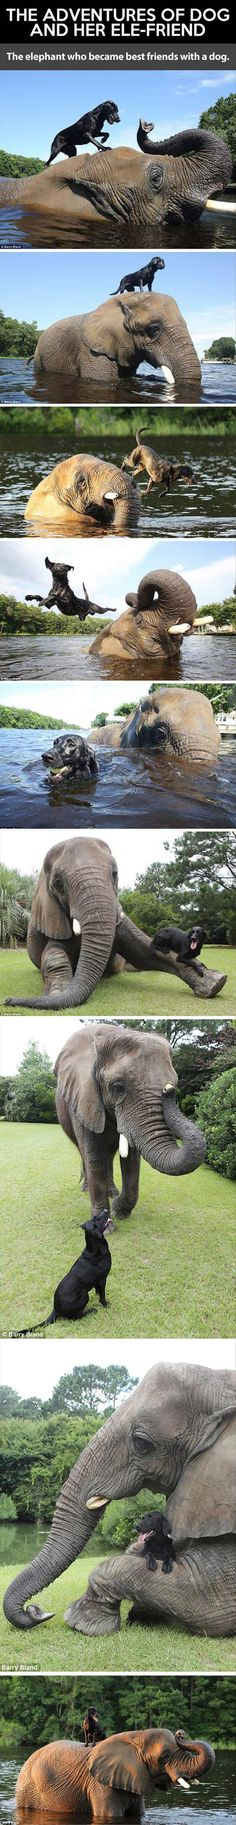 This is why I love elephants